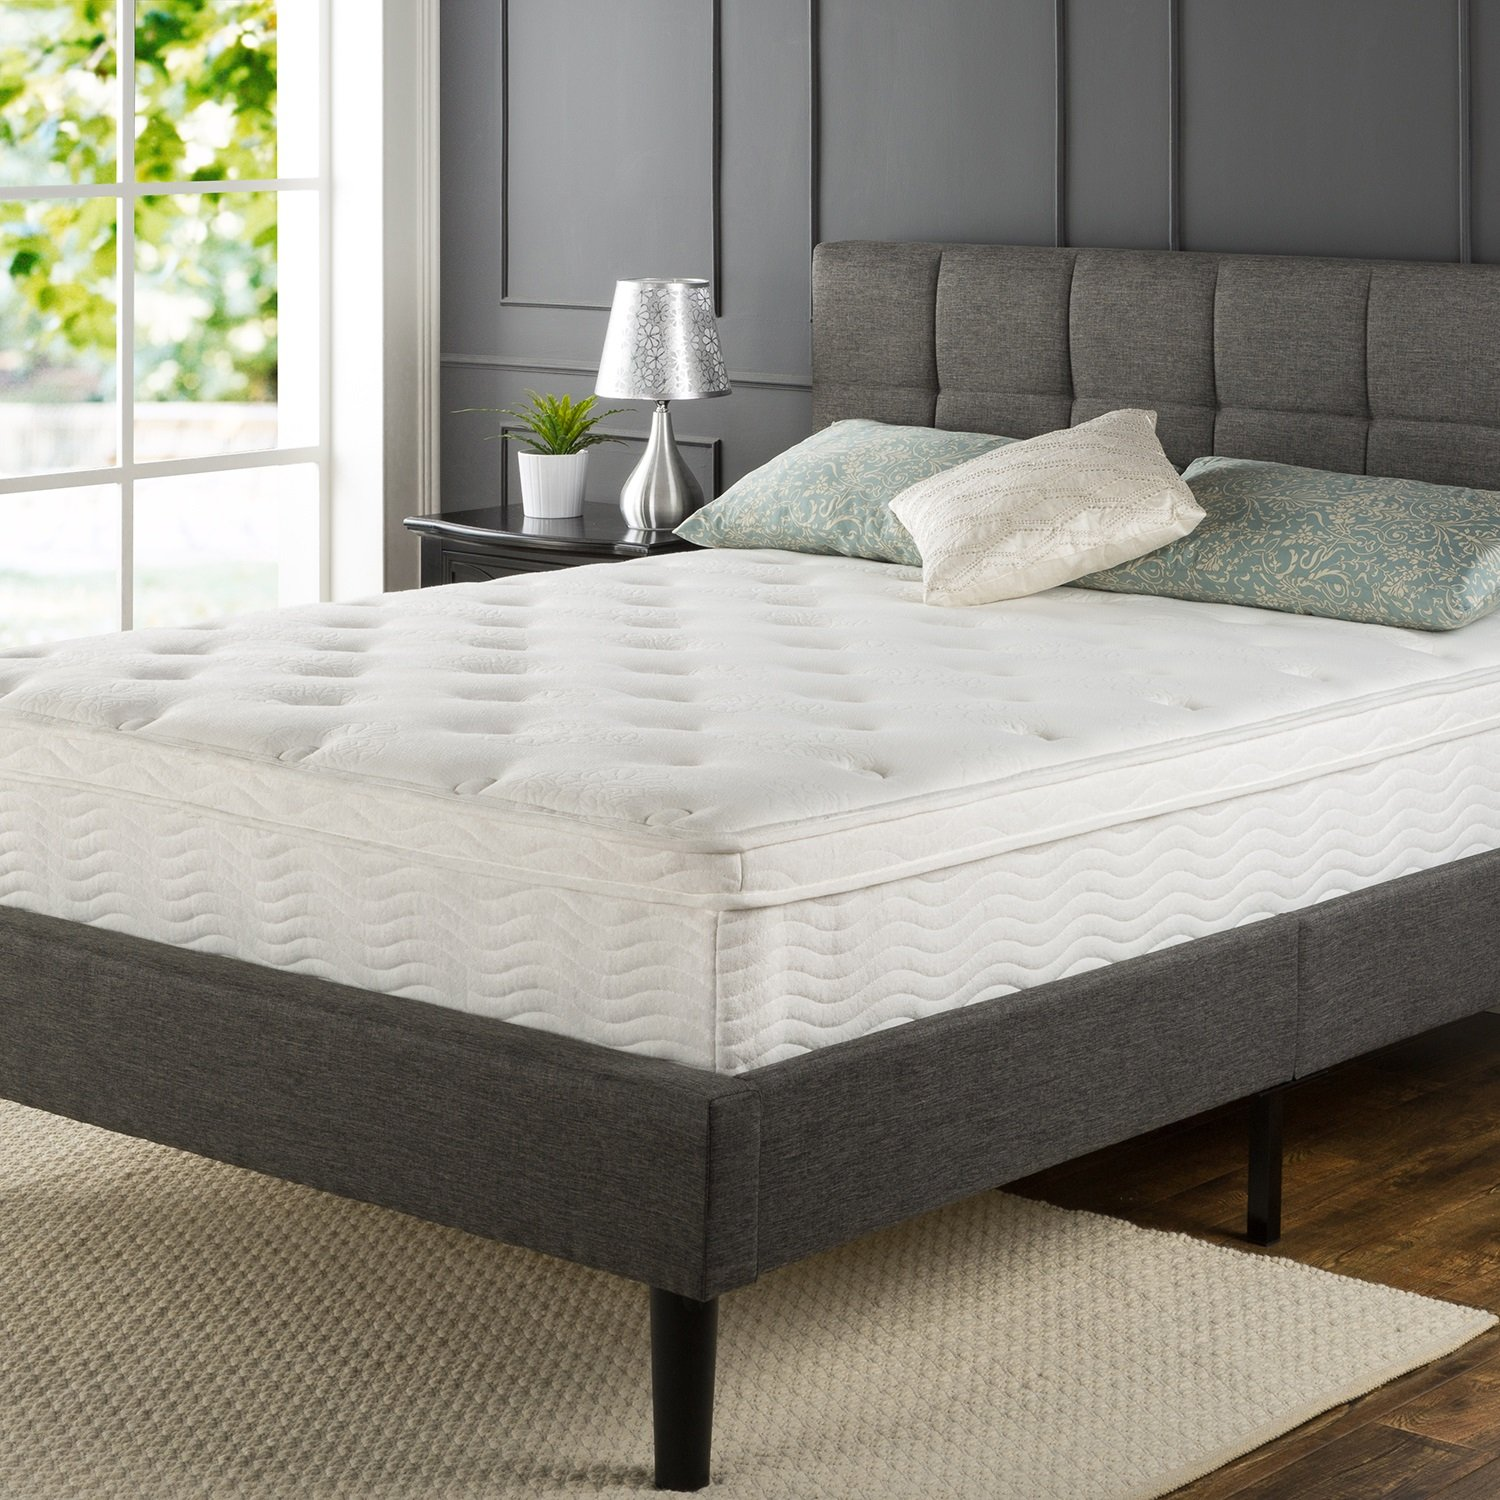 Sleep Master Ultima fort 12″ Euro Box Spring Mattress Review